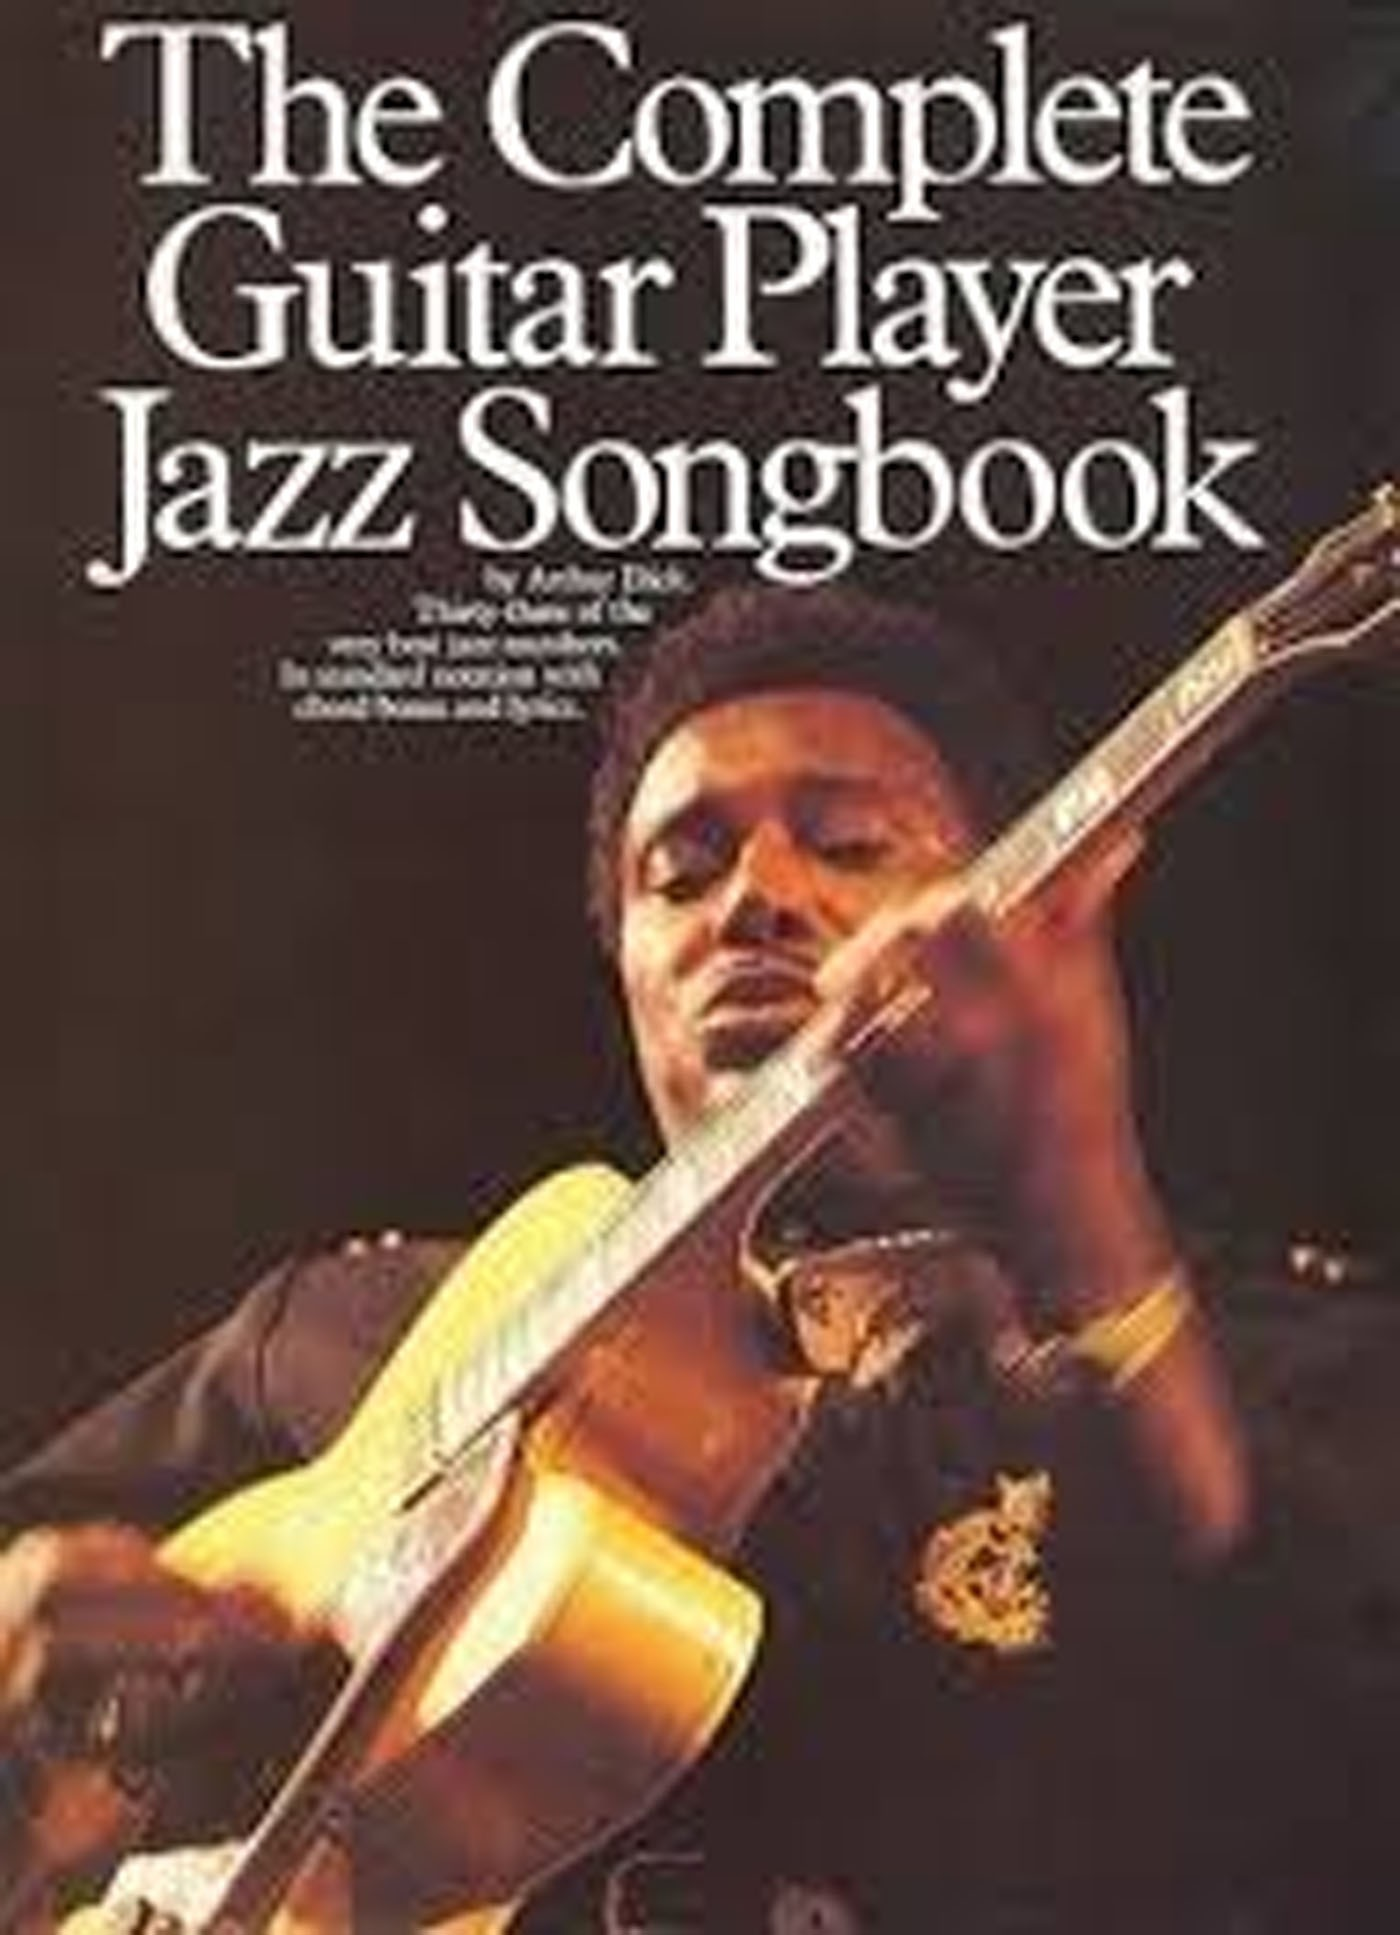 The Complete Guitar Player Jazz Songbook Arthur Dick 33 Songs Notes Chords S158